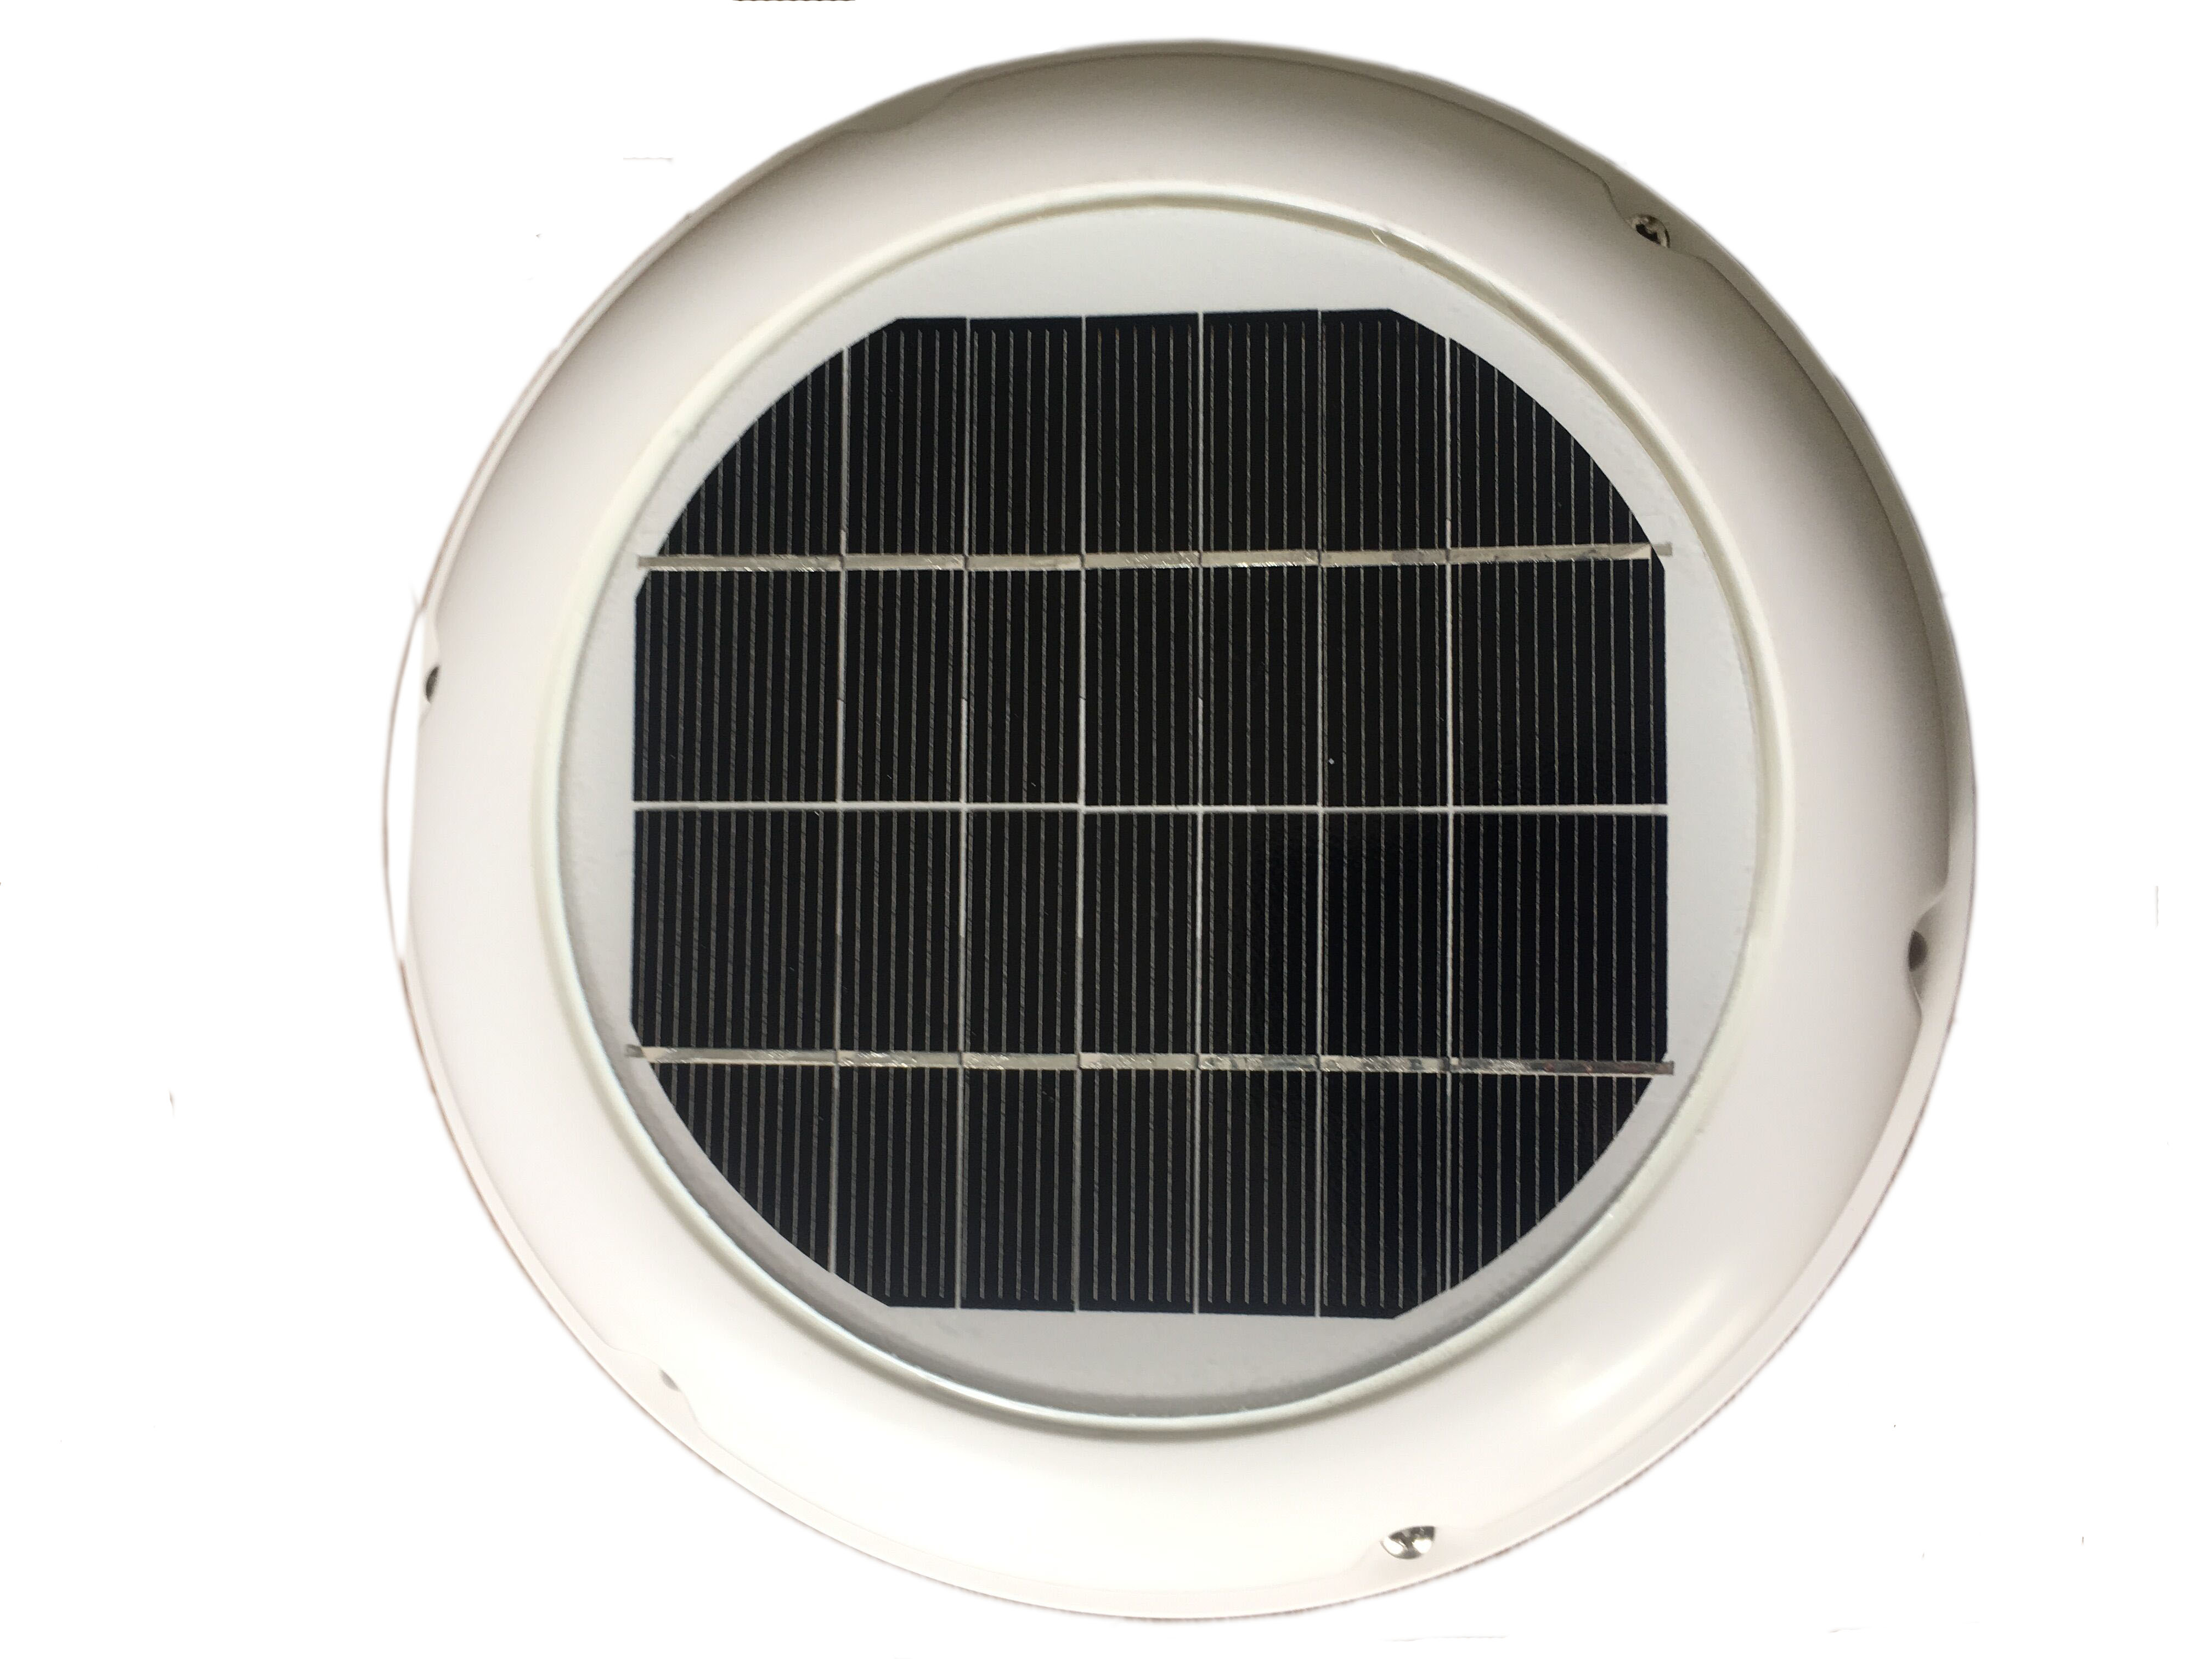 2.5W SOLAR VENT FAN AUTOMATIC VENTILATION USED FOR BATHROOM SHED HOME CONSERVATIONS CARAVANS BOATS GREEN HOUSE